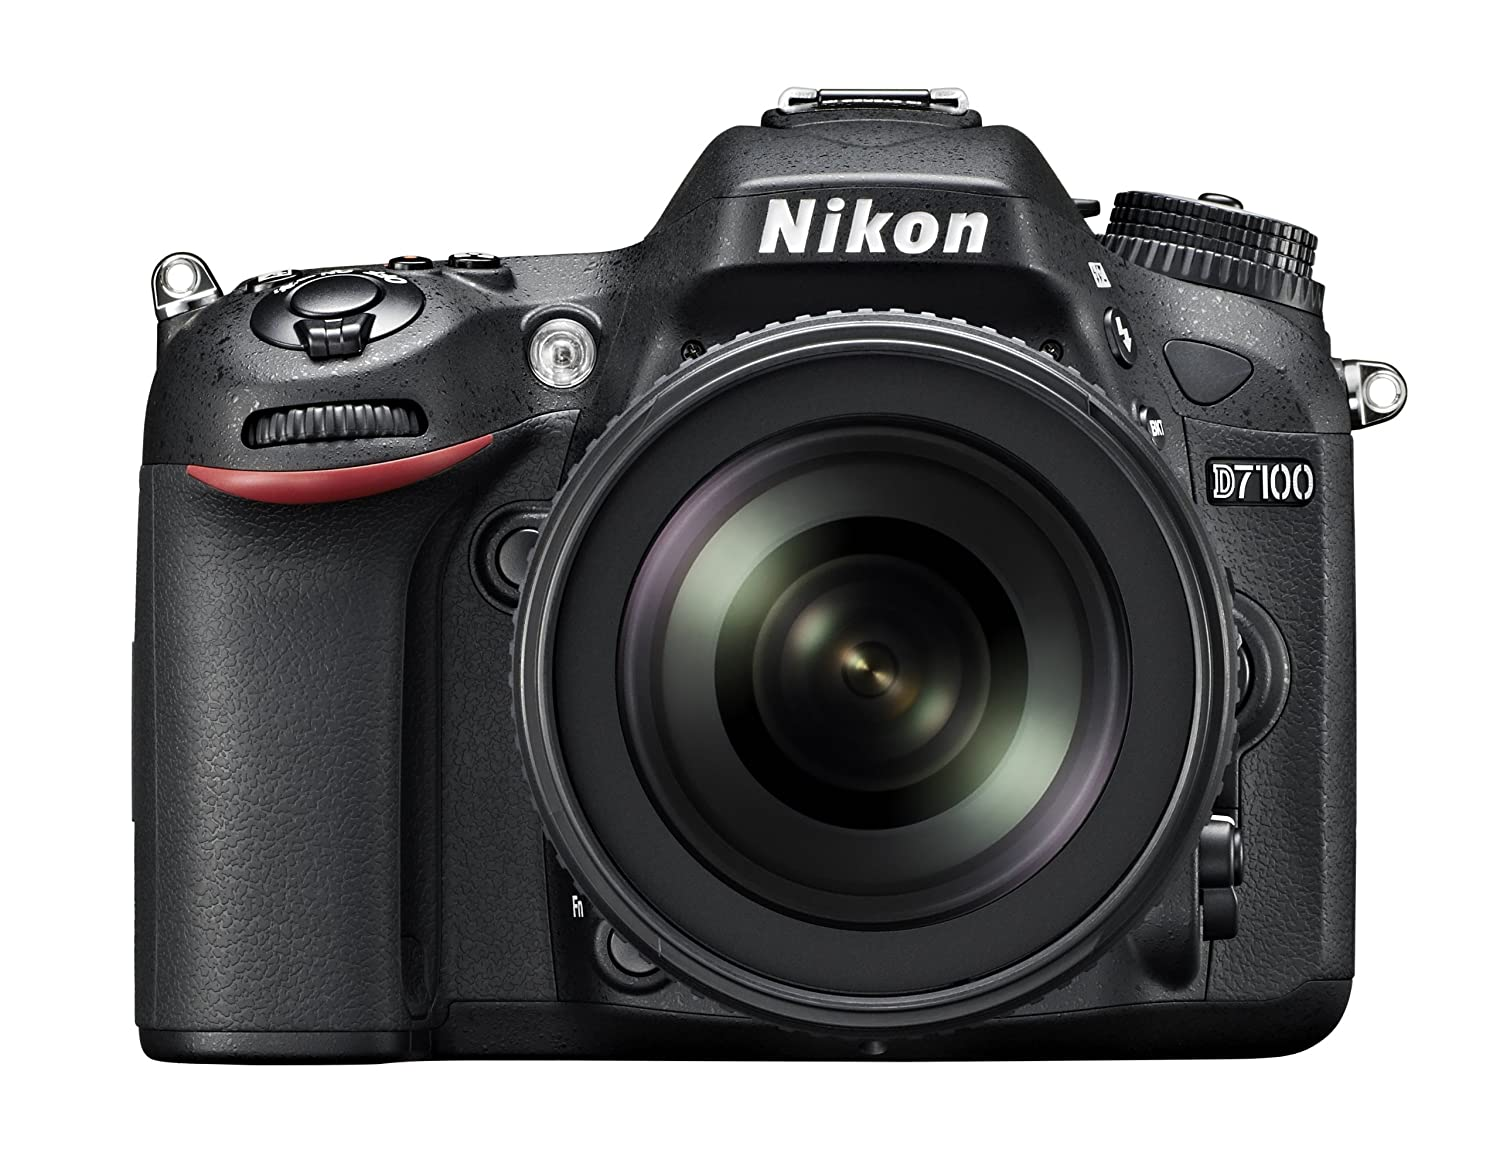 Nikon D7100 Price In Dubai Uae Compare Prices Where To Get Parts Diagram For A D5000 Slr With Dx Vr Afs 241 Megapixel Image Sensor